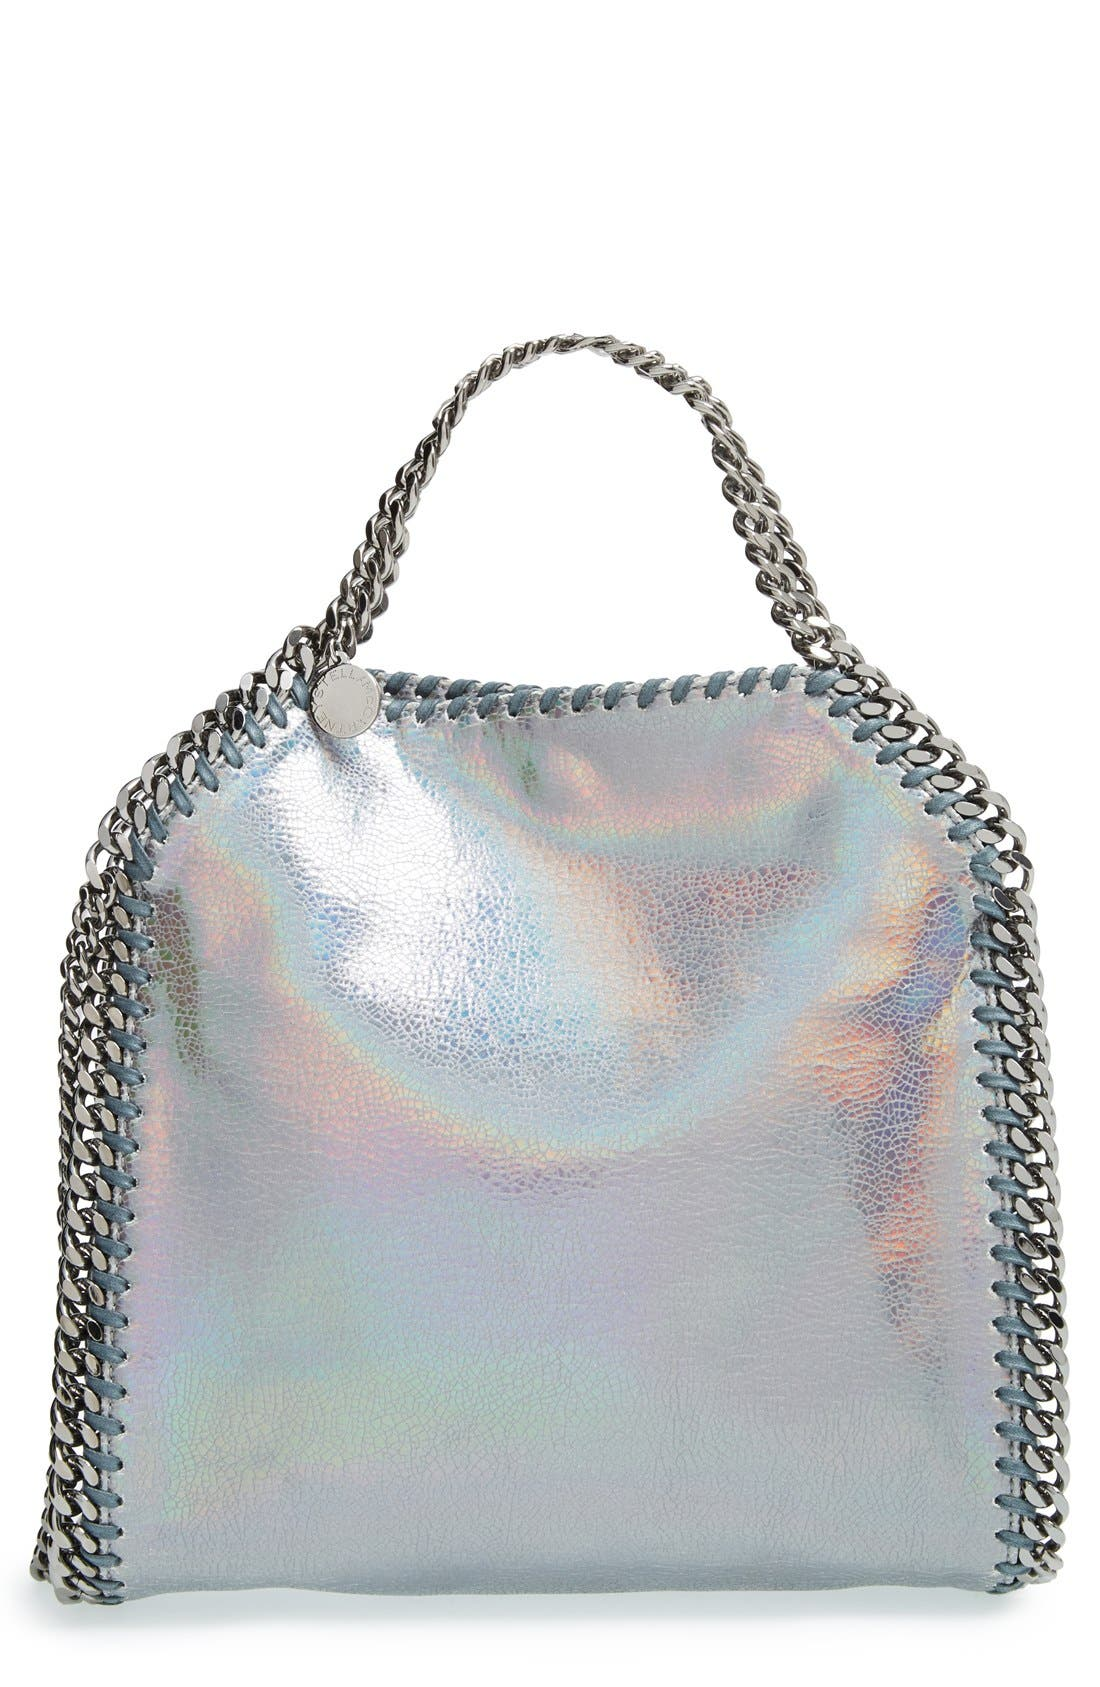 Alternate Image 1 Selected - Stella McCartney 'Mini Hologram Falaballa' Faux Leather Tote